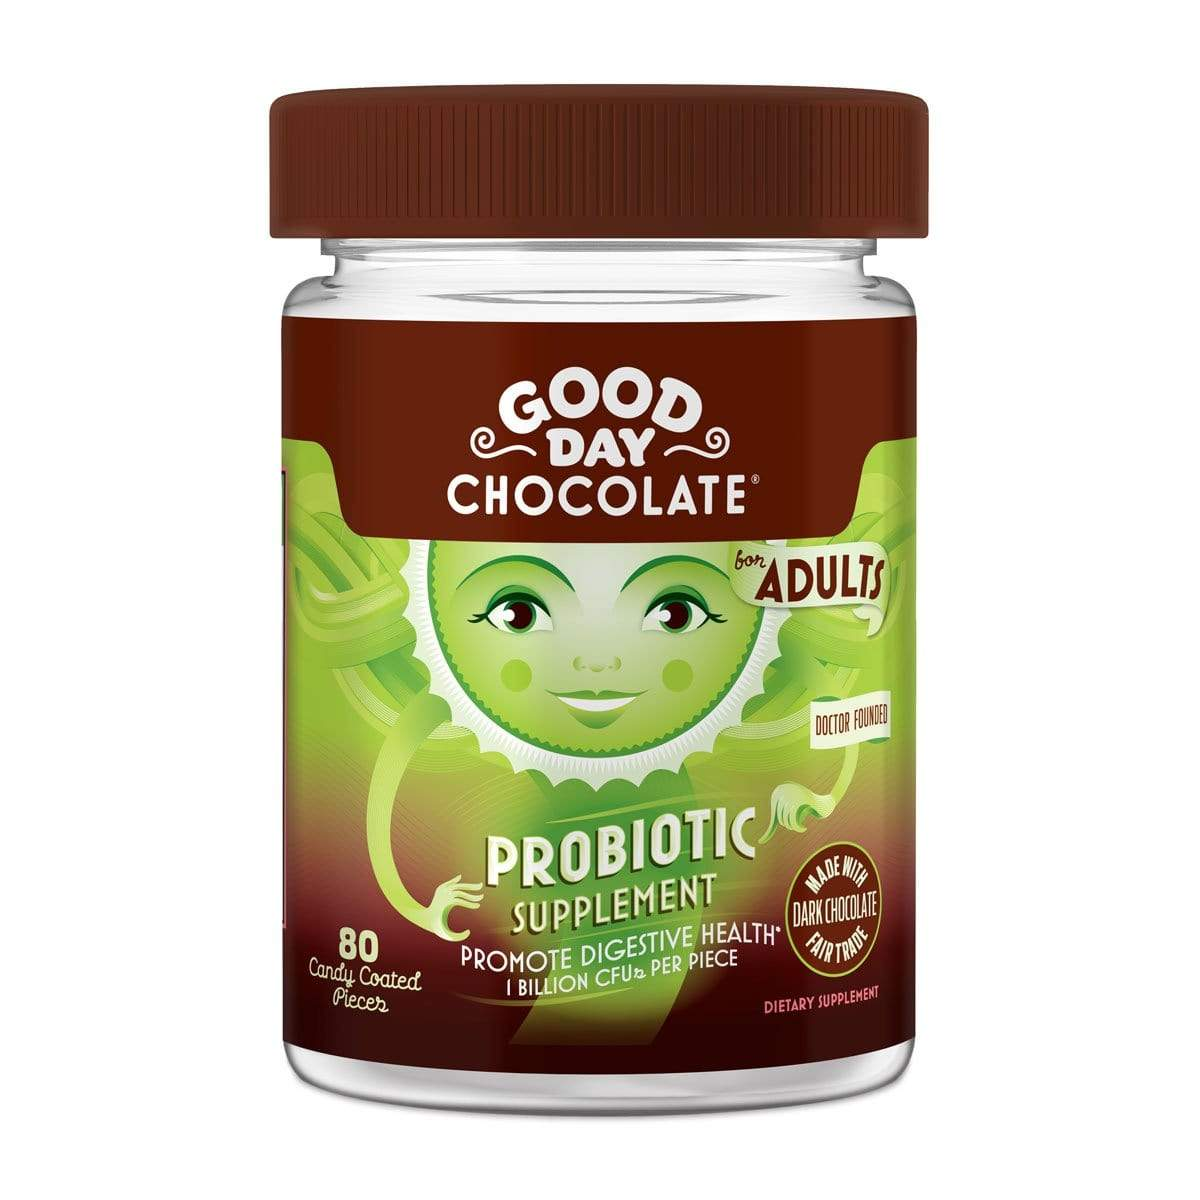 Good Day Chocolate (Sleep, Calm, Energy & More) - Snacks 80 Count Jar